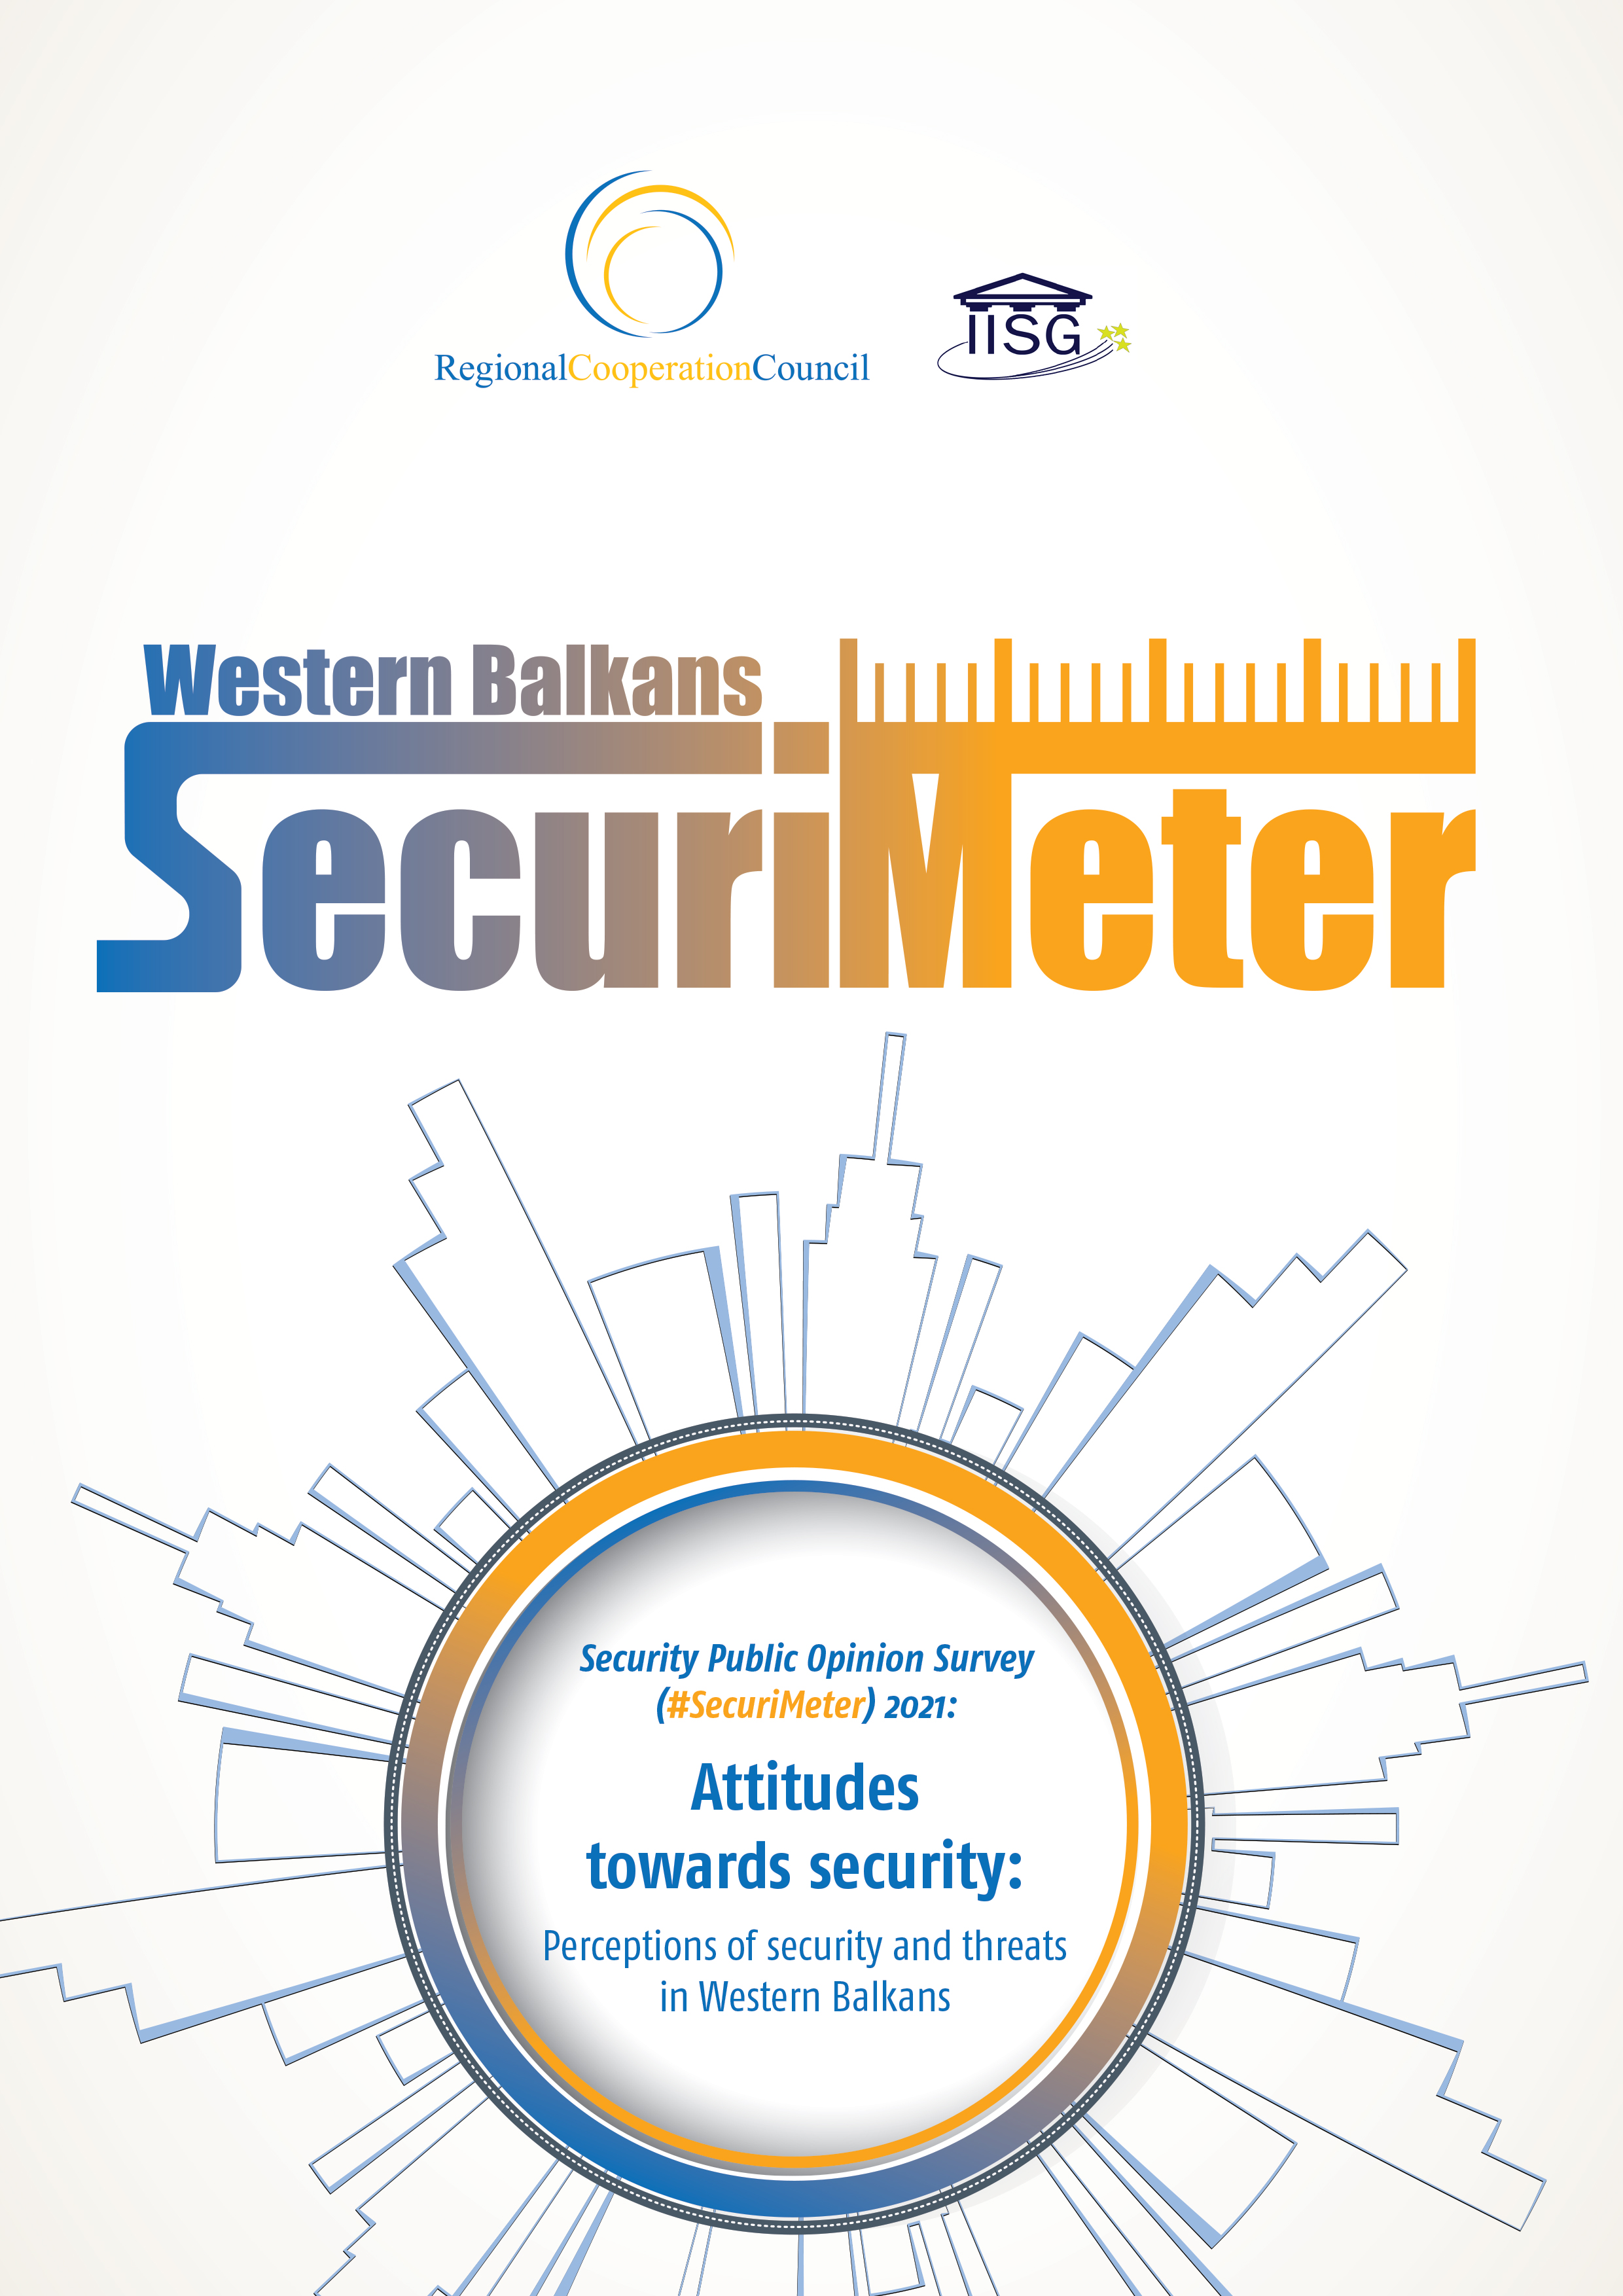 """Security Public Opinion Survey (#SecuriMeter) 2021: """"Attitudes towards security: Perceptions of security and threats in Western Balkans"""""""